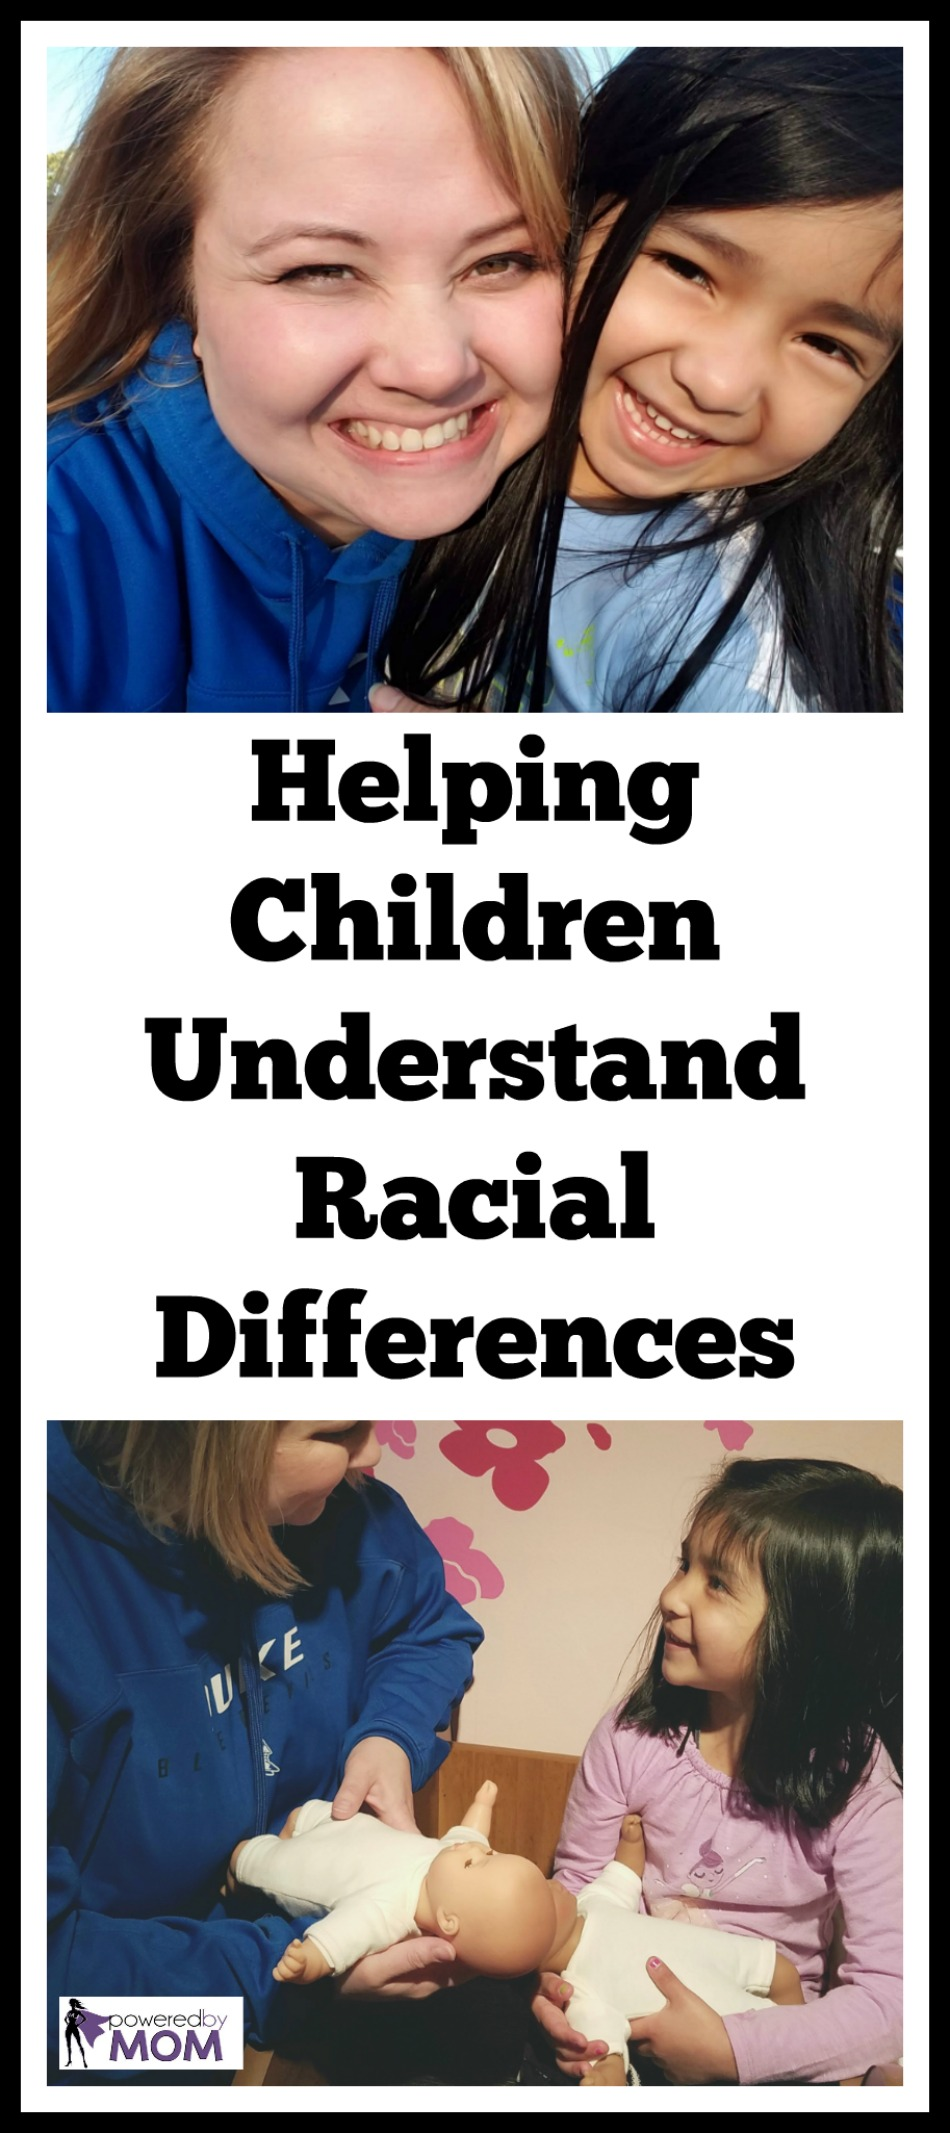 Understand Racial Differences